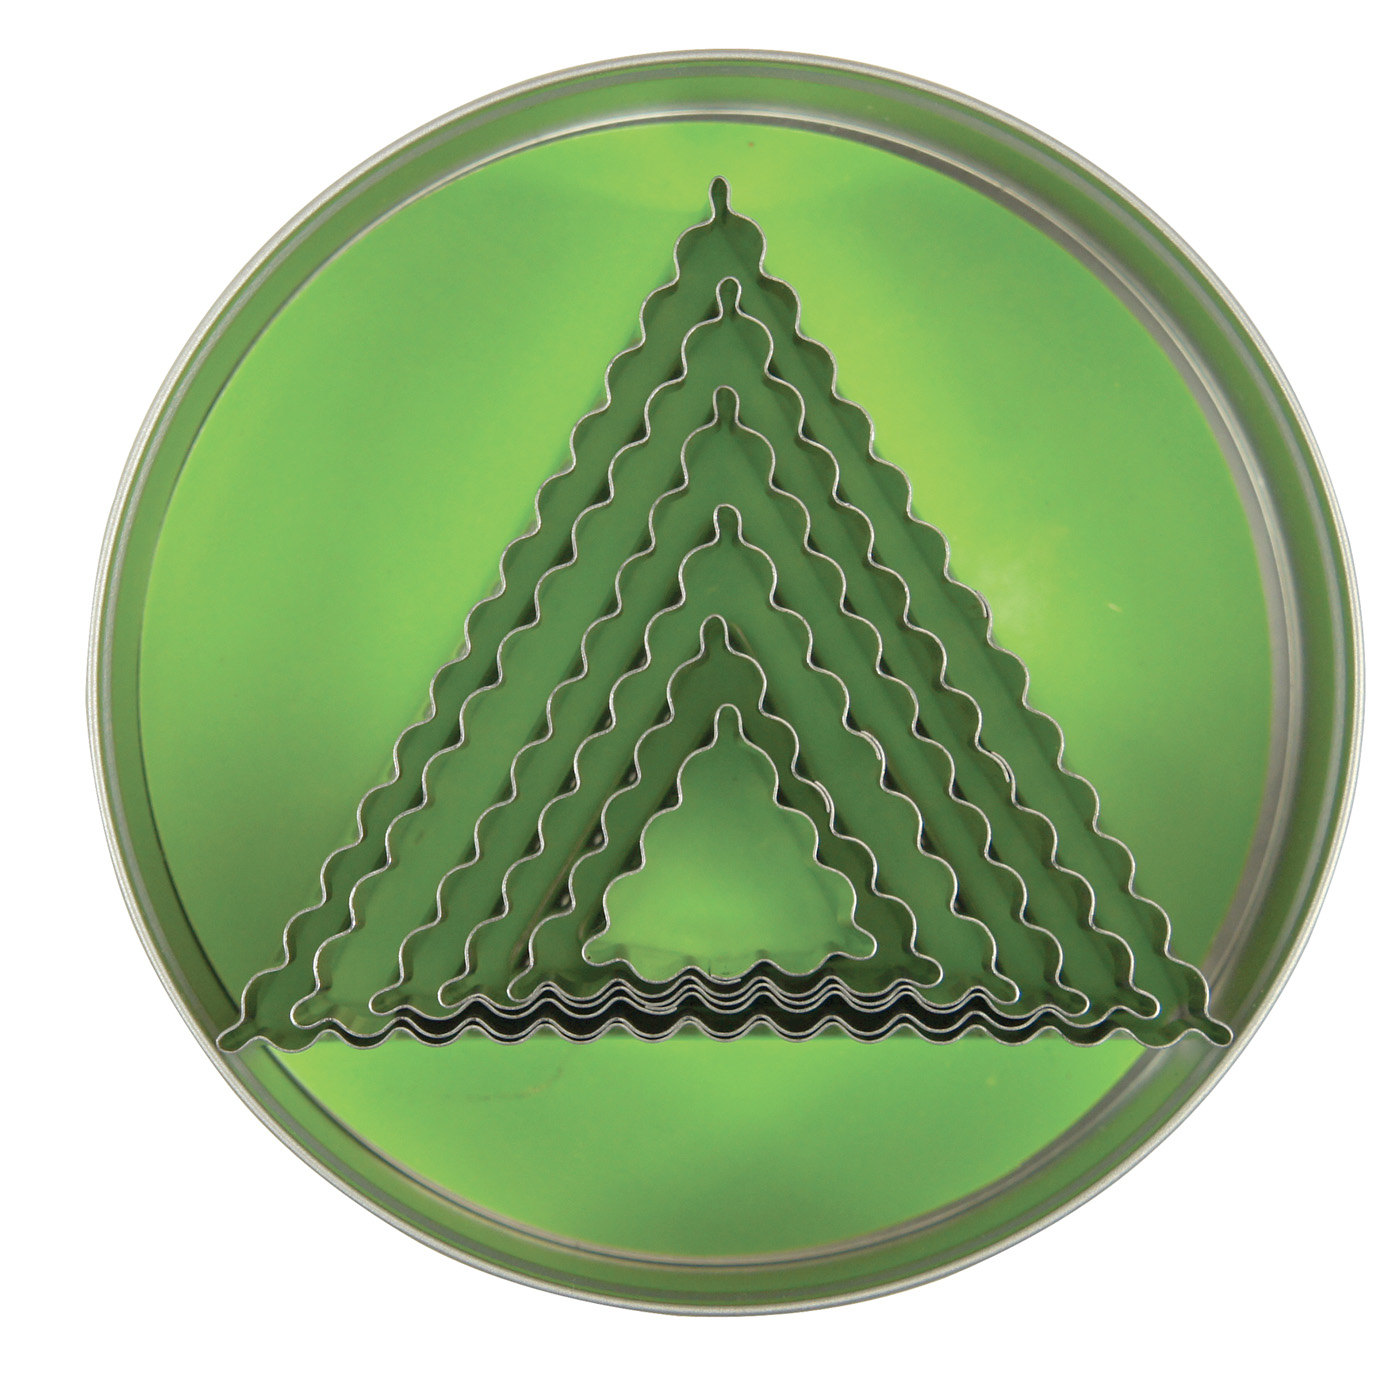 Fox Run Craftsmen Crinkled Triangle Cookie Cutters, Set of 6